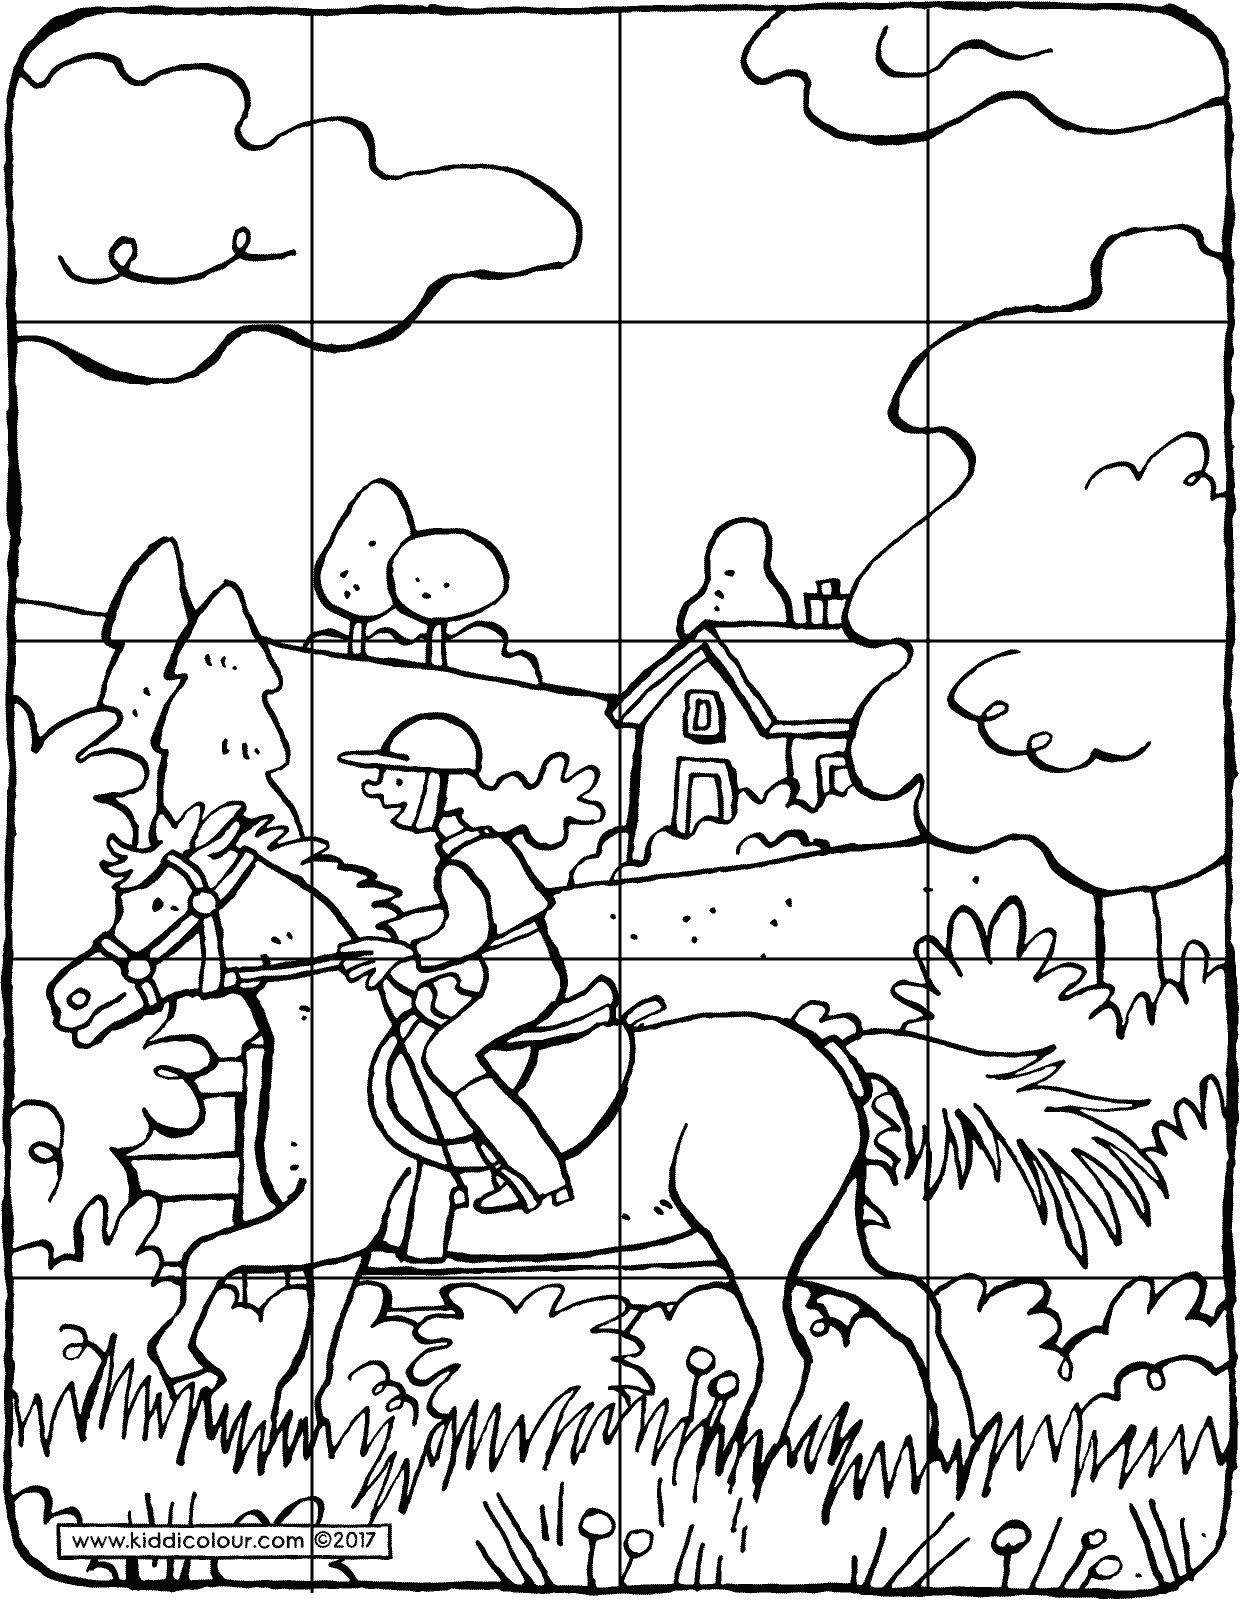 horse riding puzzle colouring page drawing picture p20V